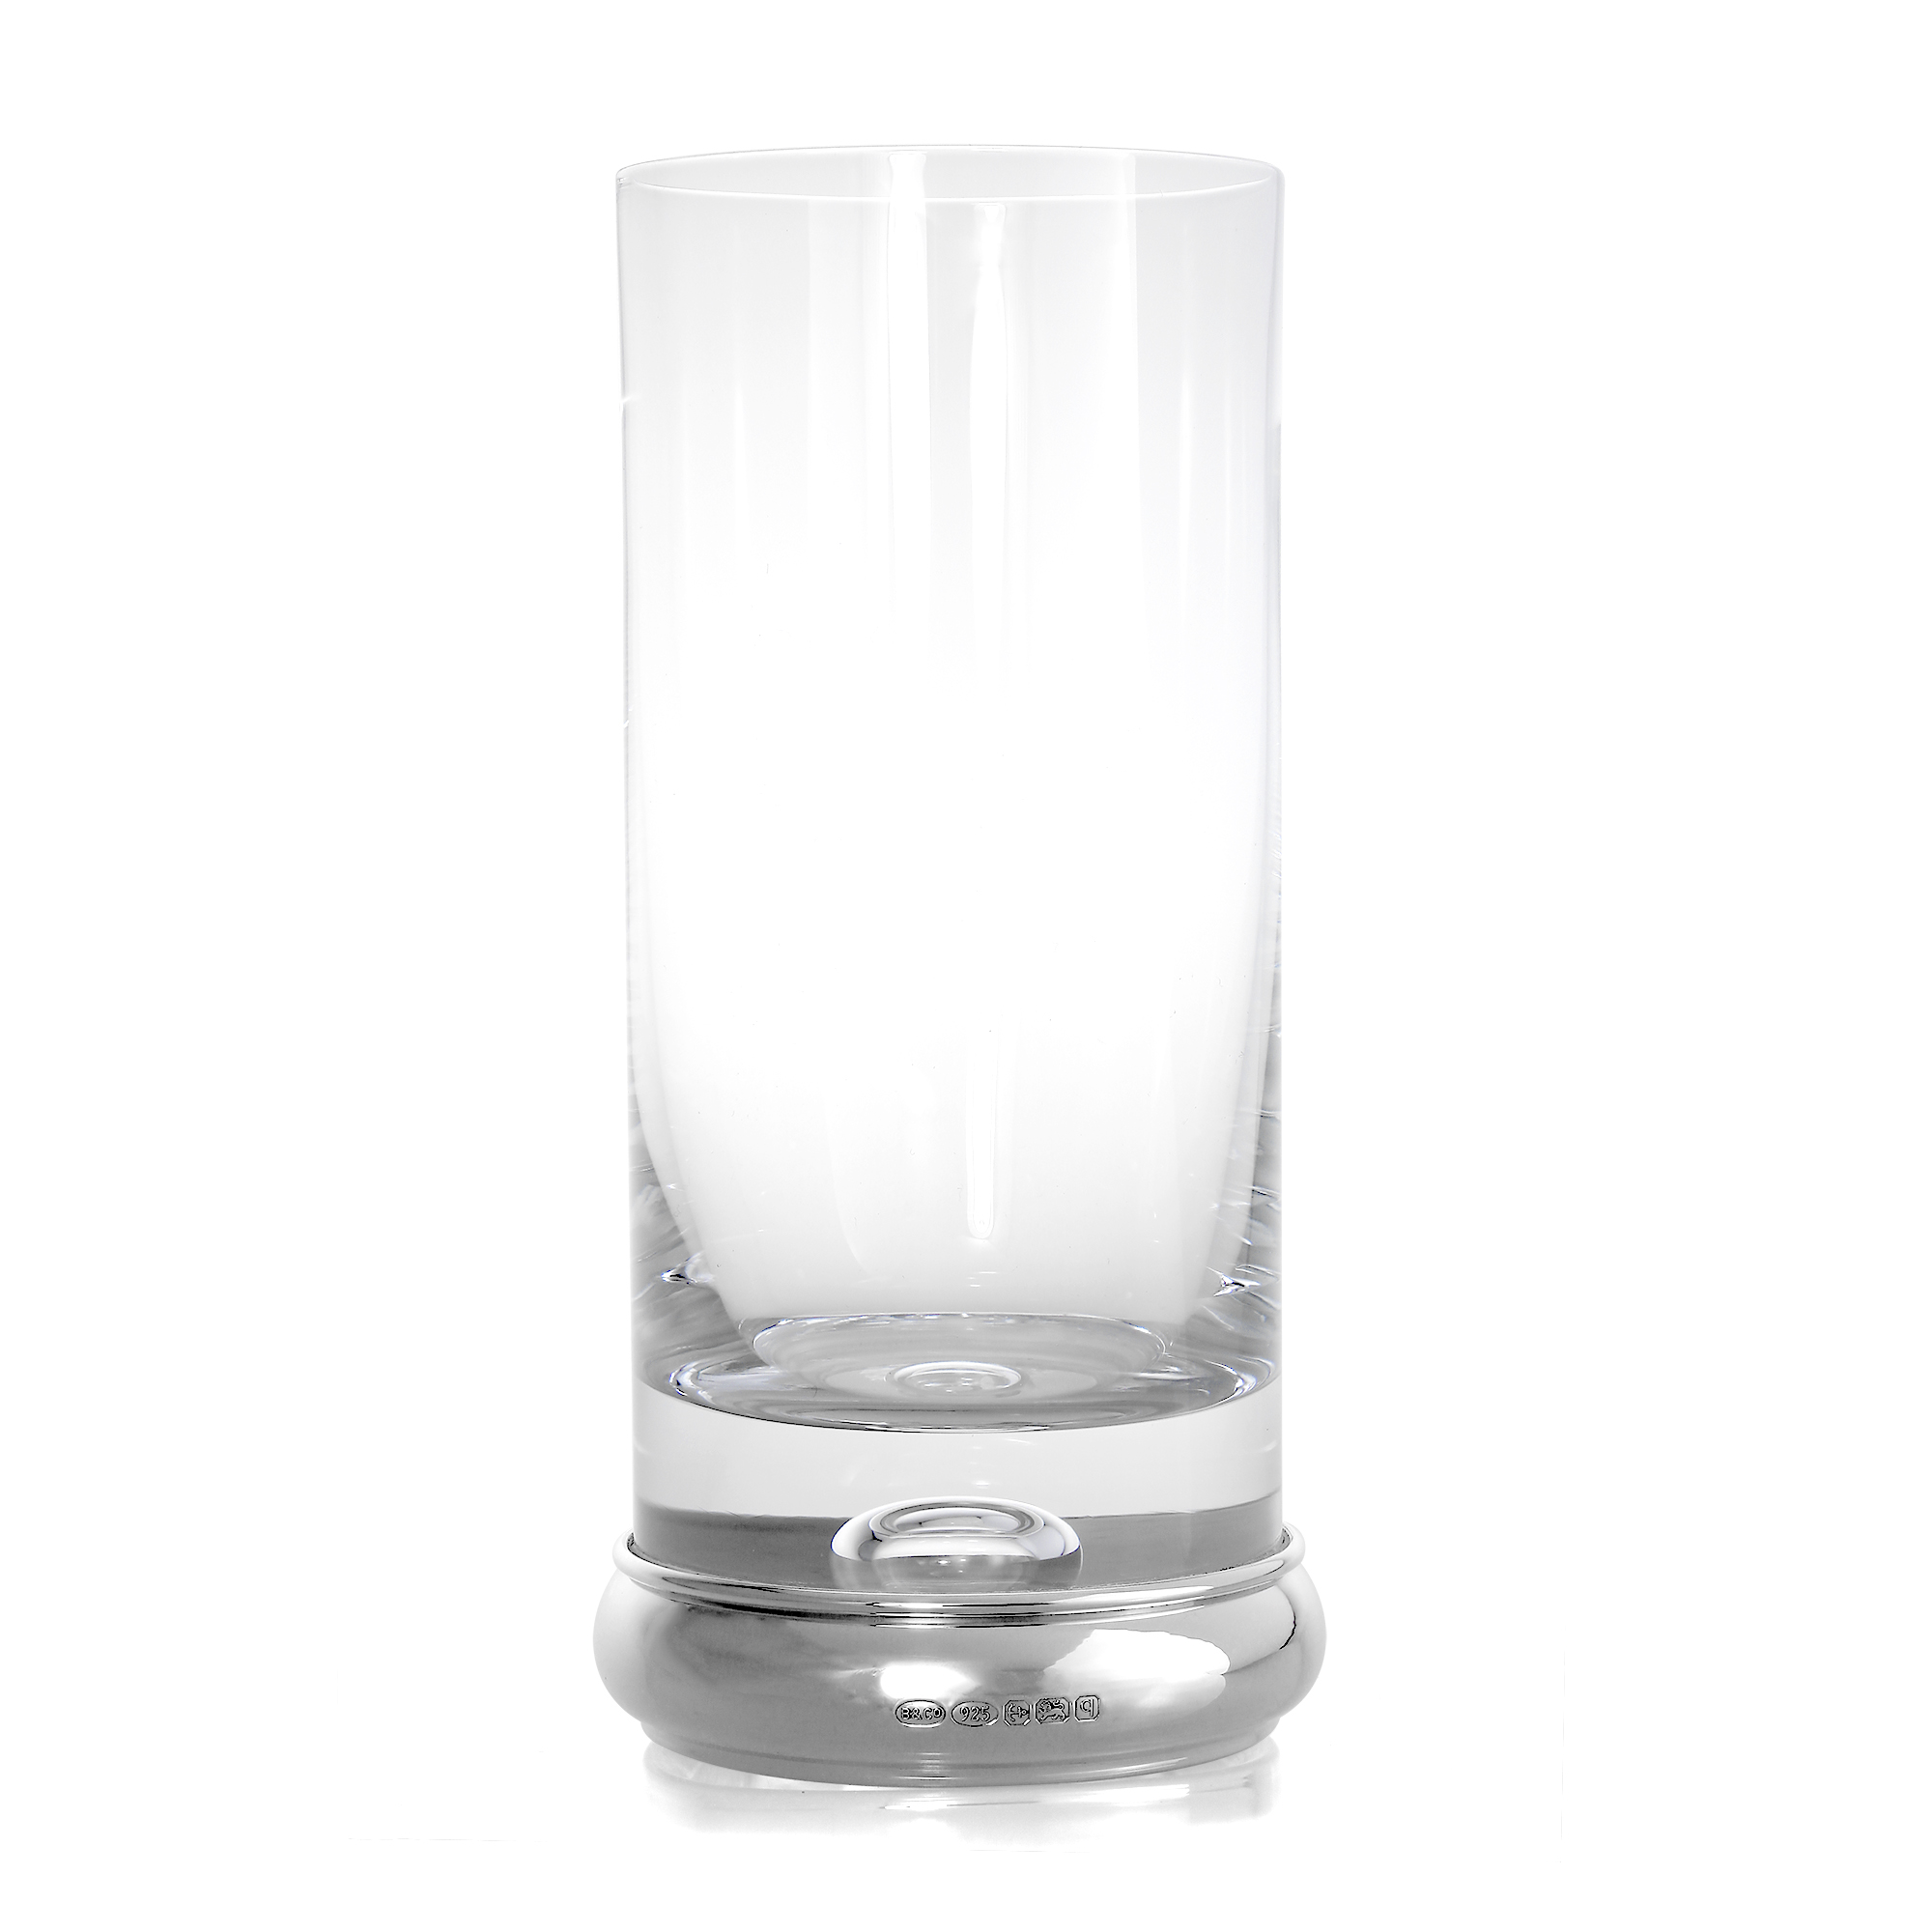 An image of Sterling Silver Based Engravable High Ball Glass Tumbler